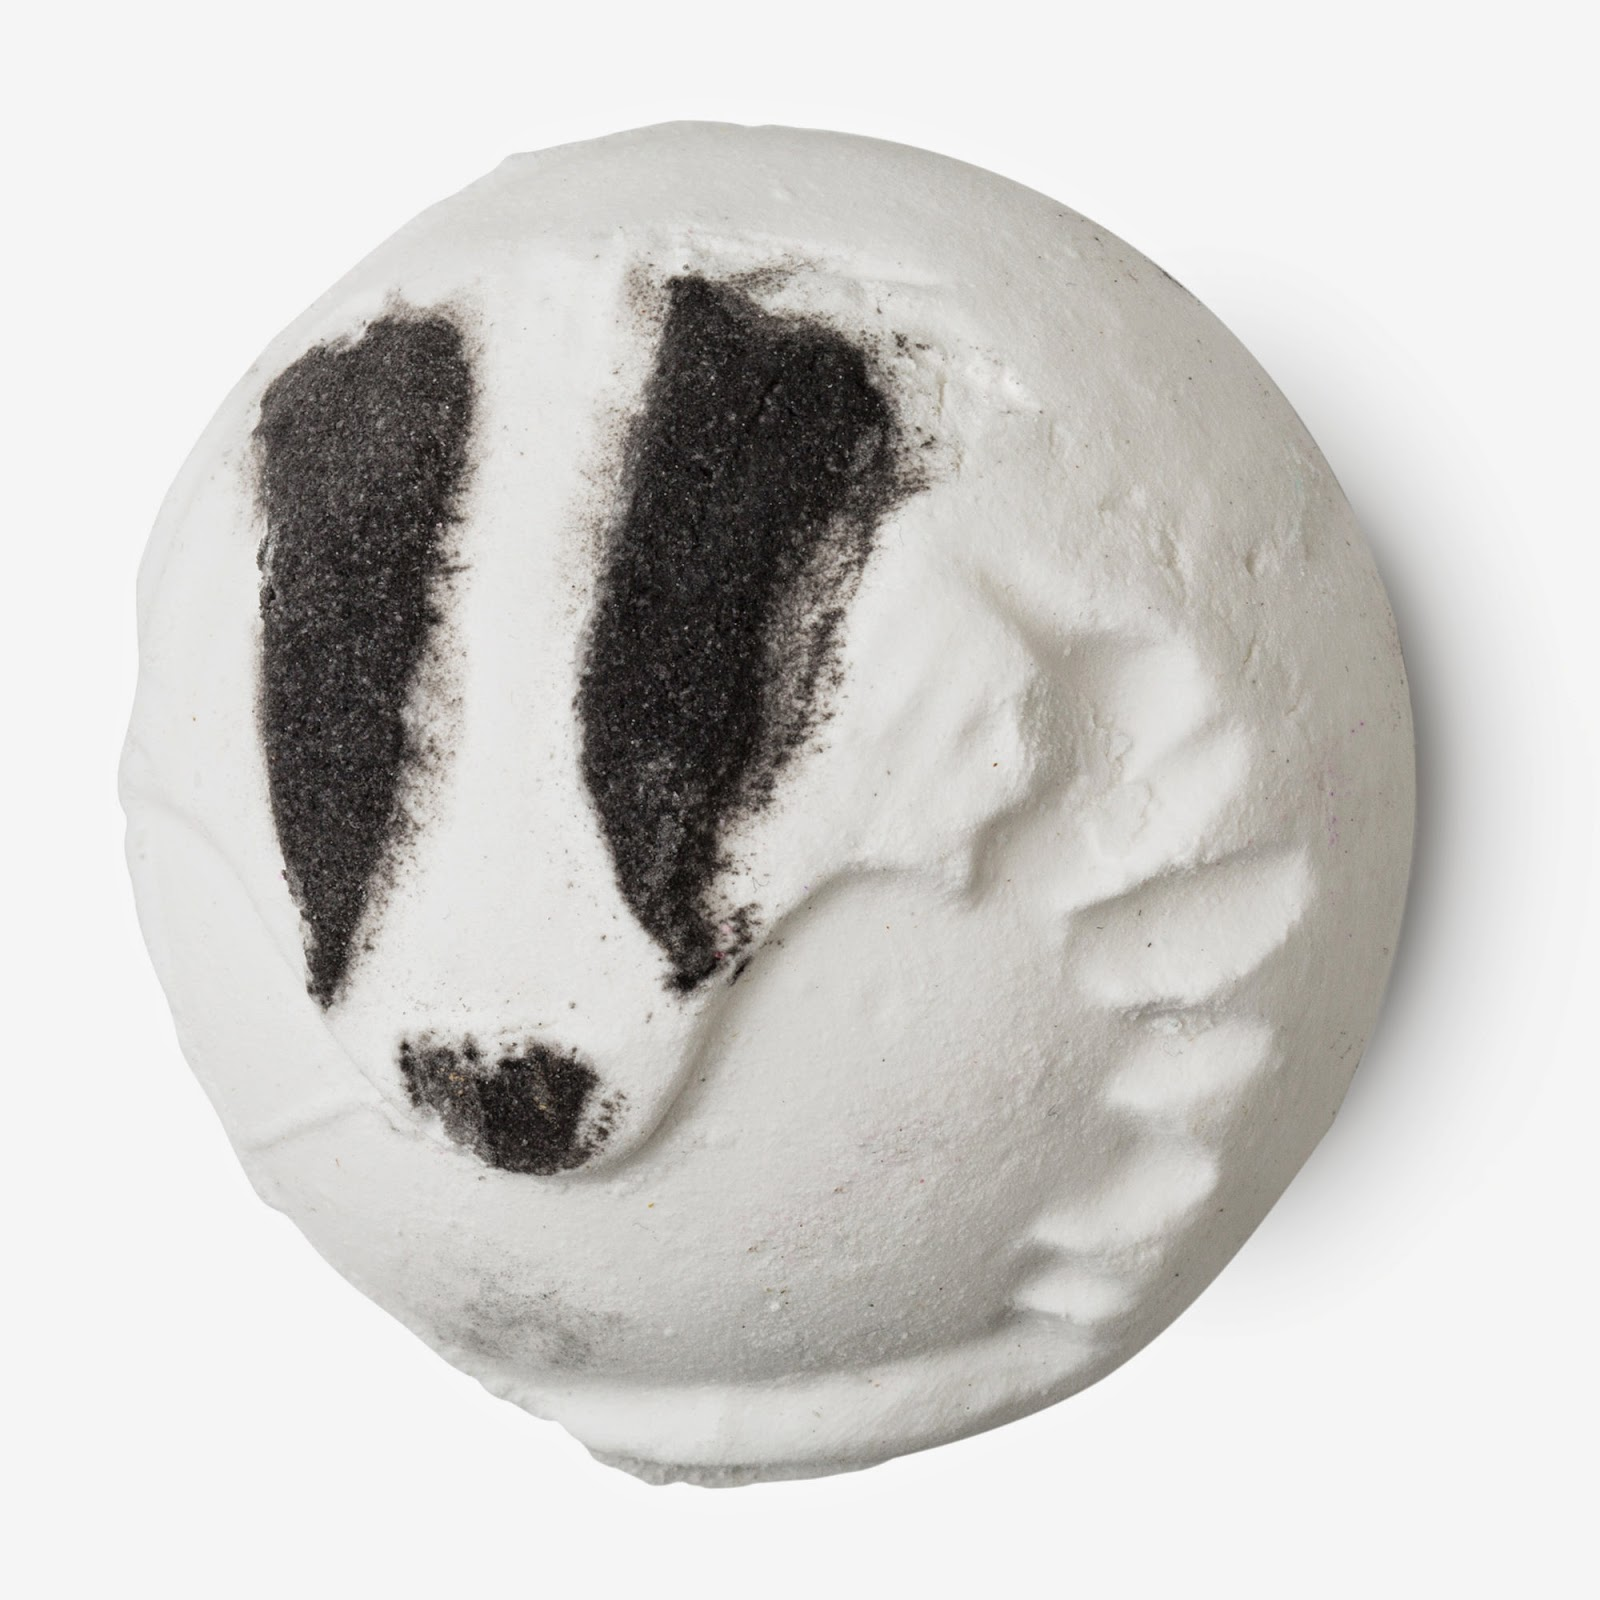 badger inspired bath bomb from lush for charity